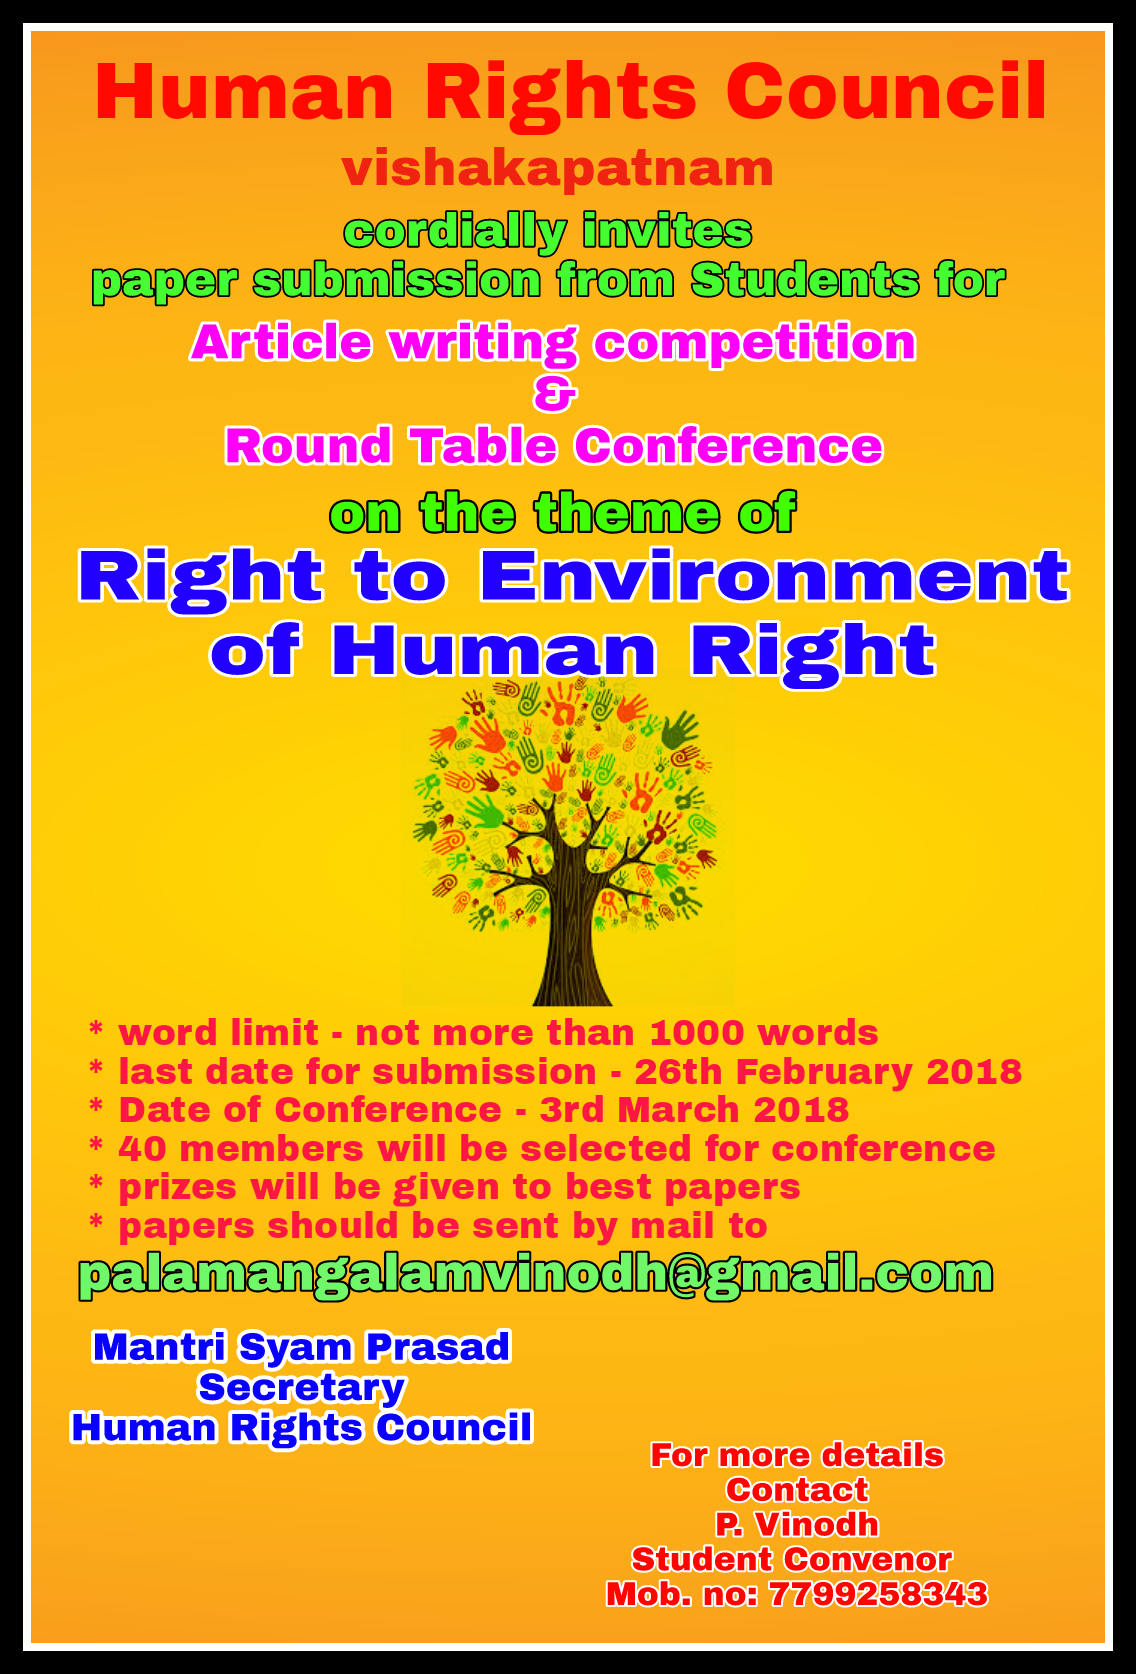 Round table conference on right to environment of human right by human rights council vishakapatnam is conducting a round table conference on right to environment of human right on 3rd march 2018 where students will stopboris Choice Image